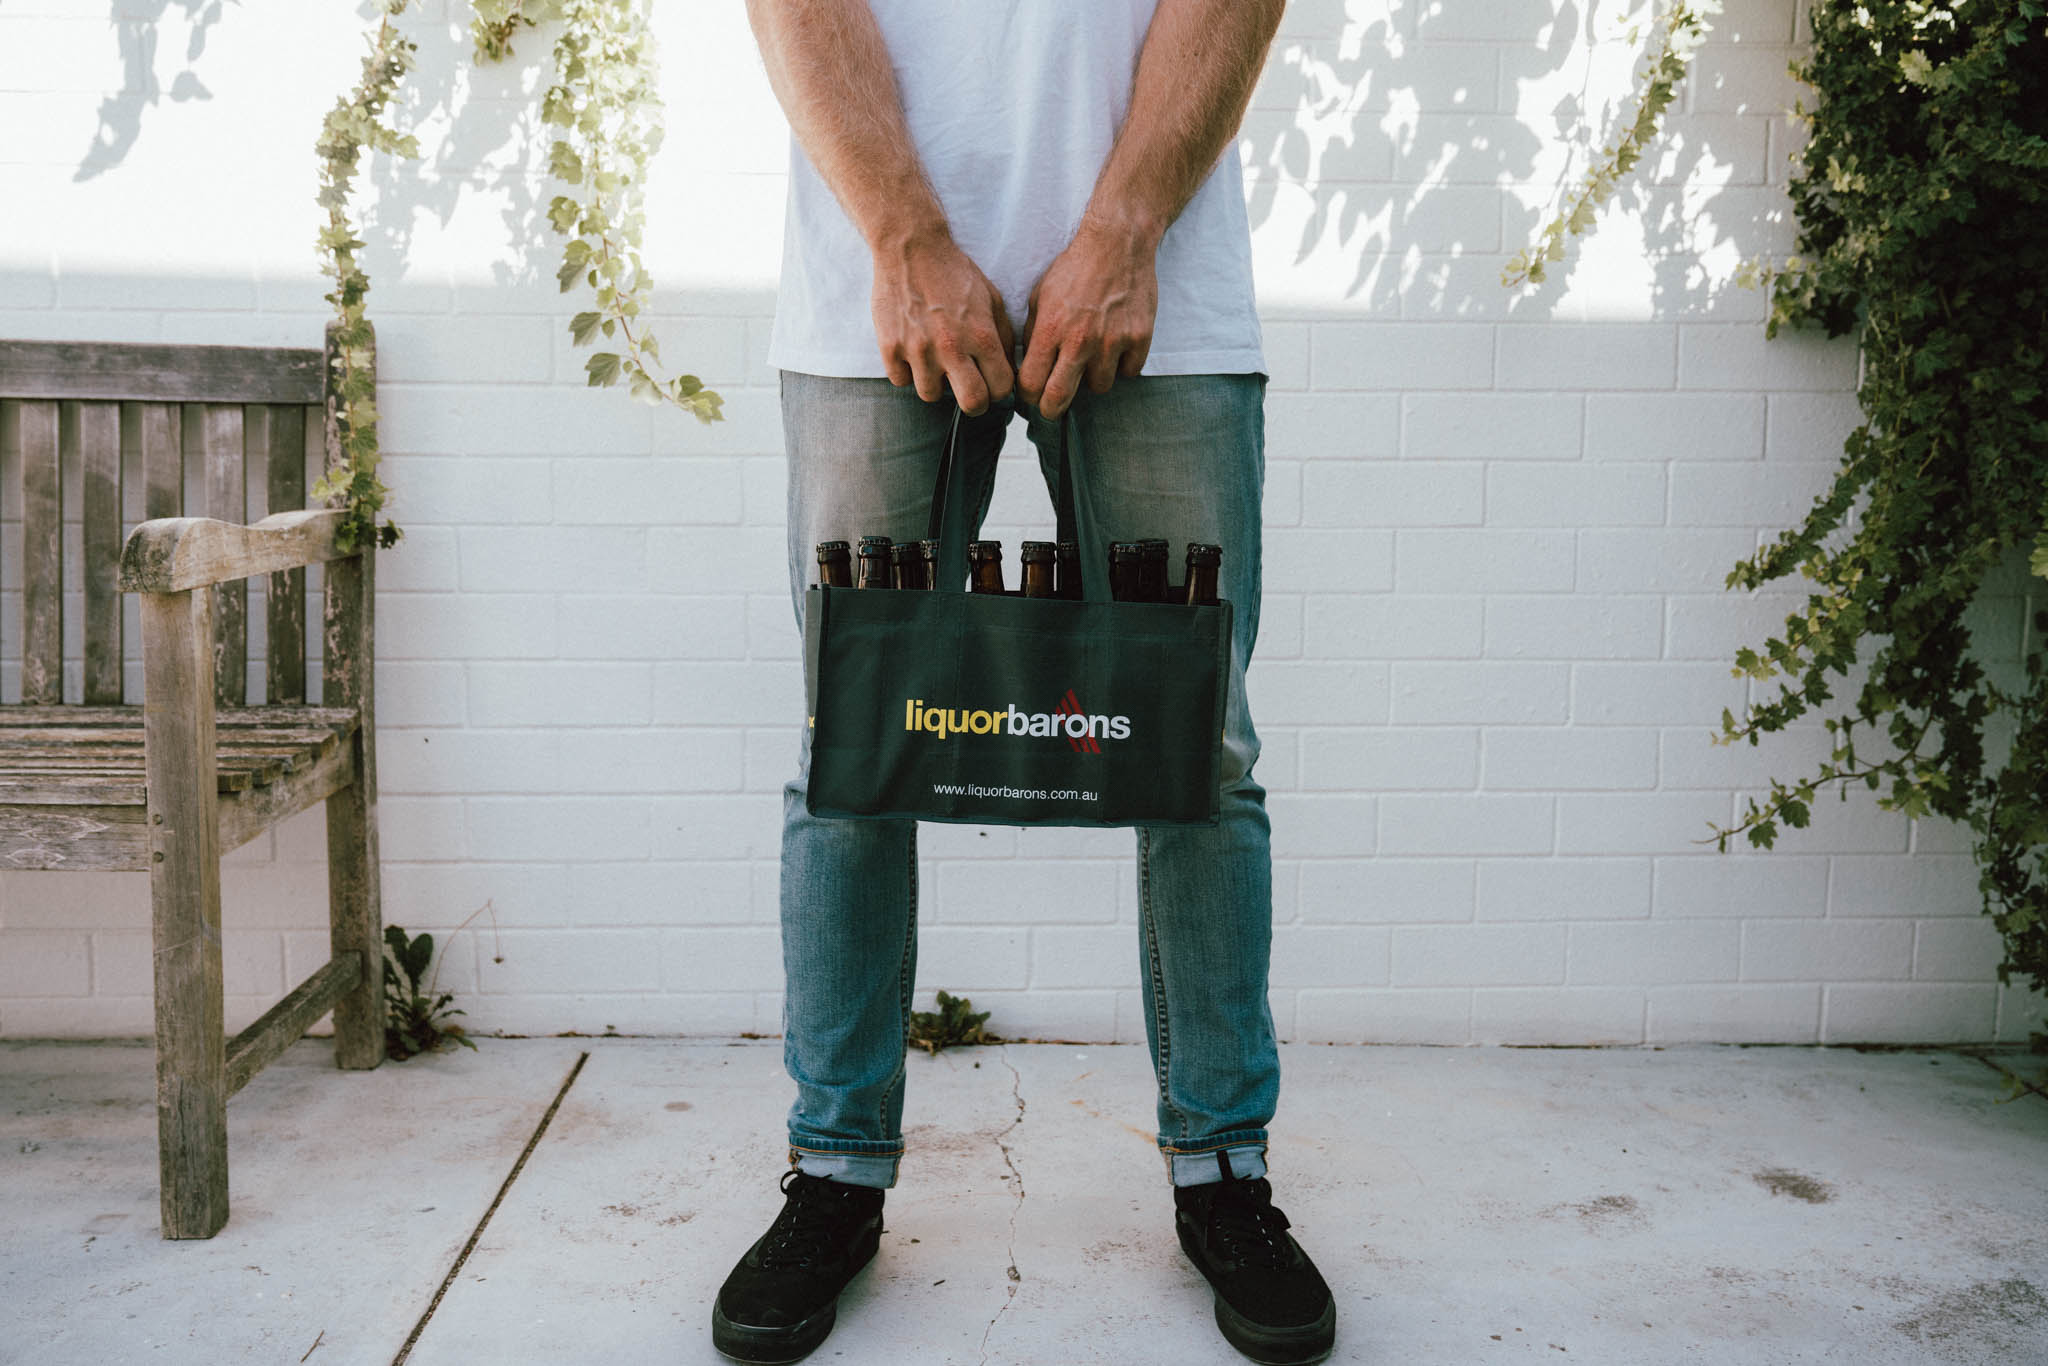 Branded reusable bags to hold beer and wine